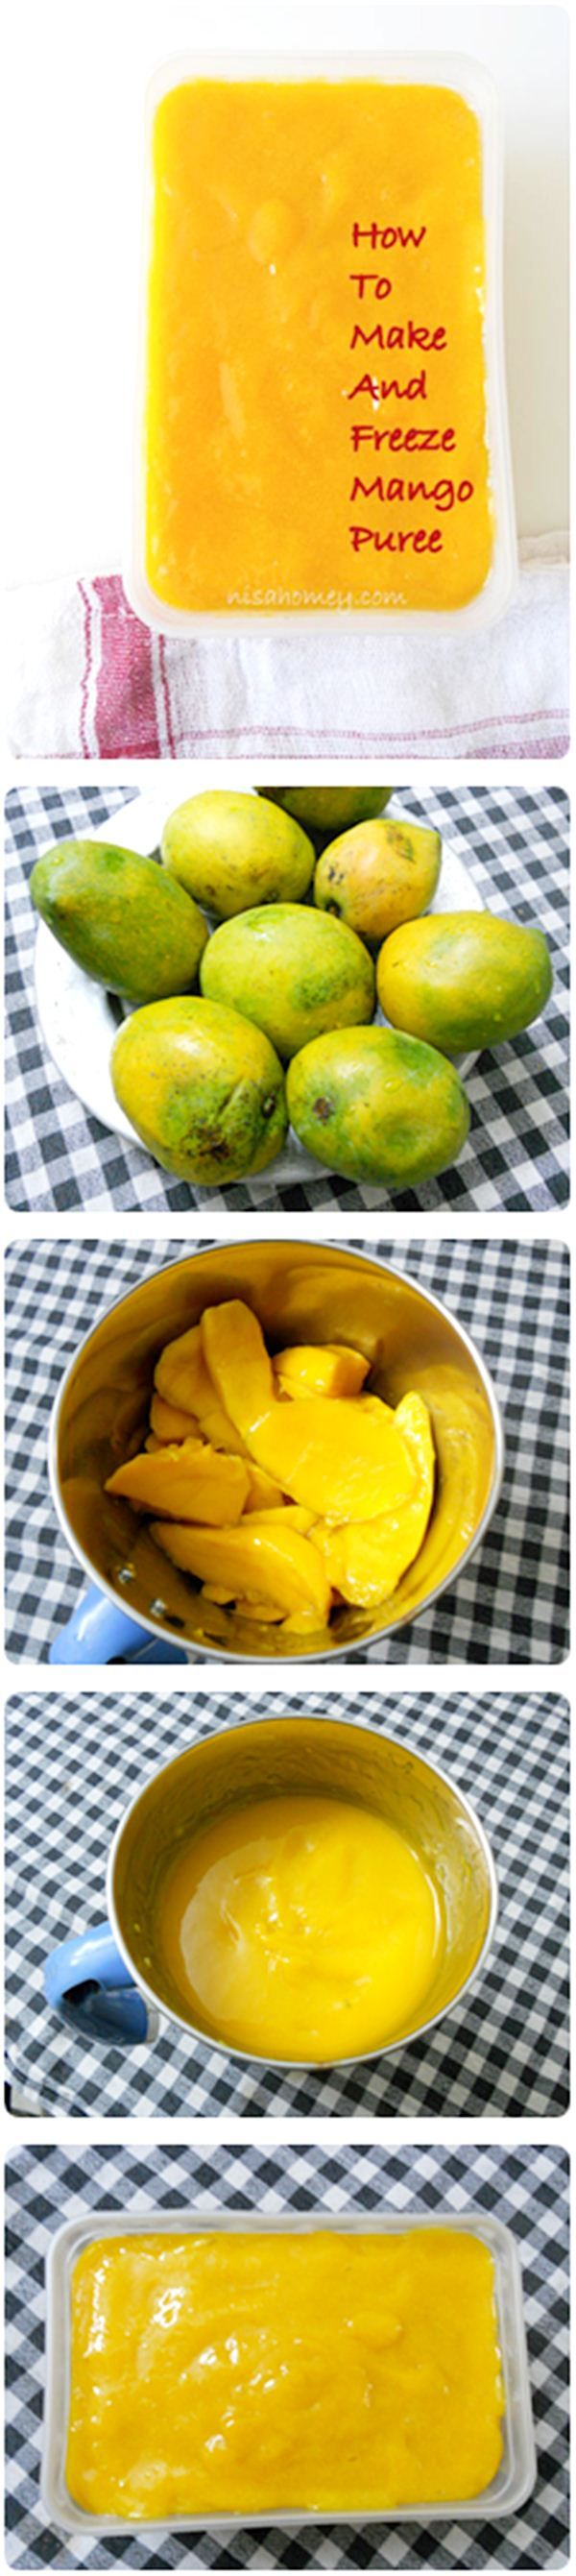 How To Make Mango Puree, DIY Mango Puree is so easy to make...try it you will never buy a can of mango pulp again.